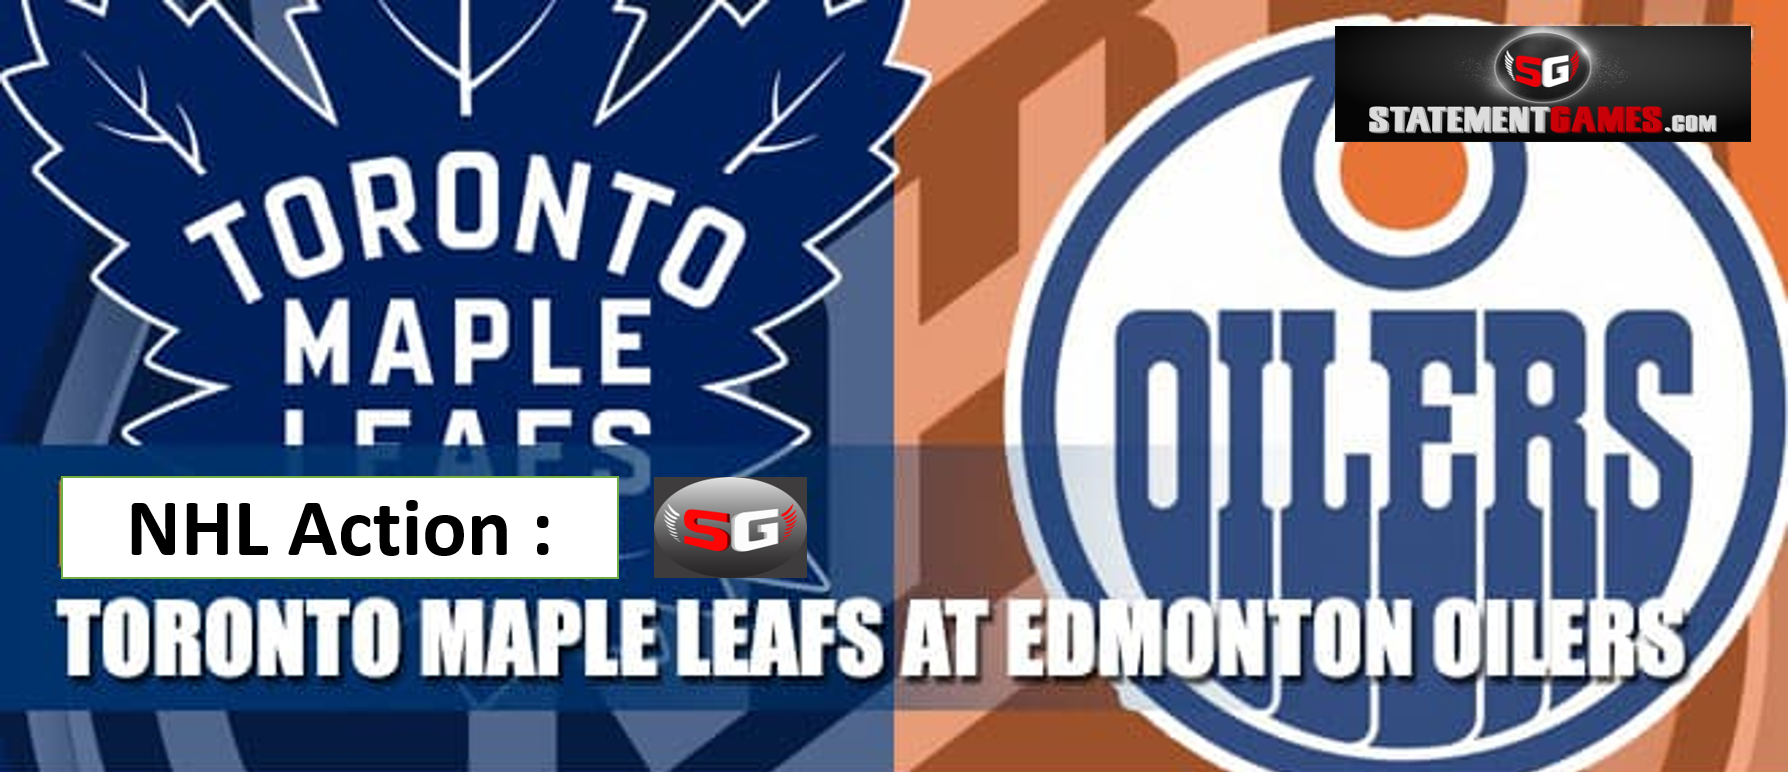 Toronto Maple Leafs Vs Edmonton Oilers – NHL Game Day Preview: 01.30.2021